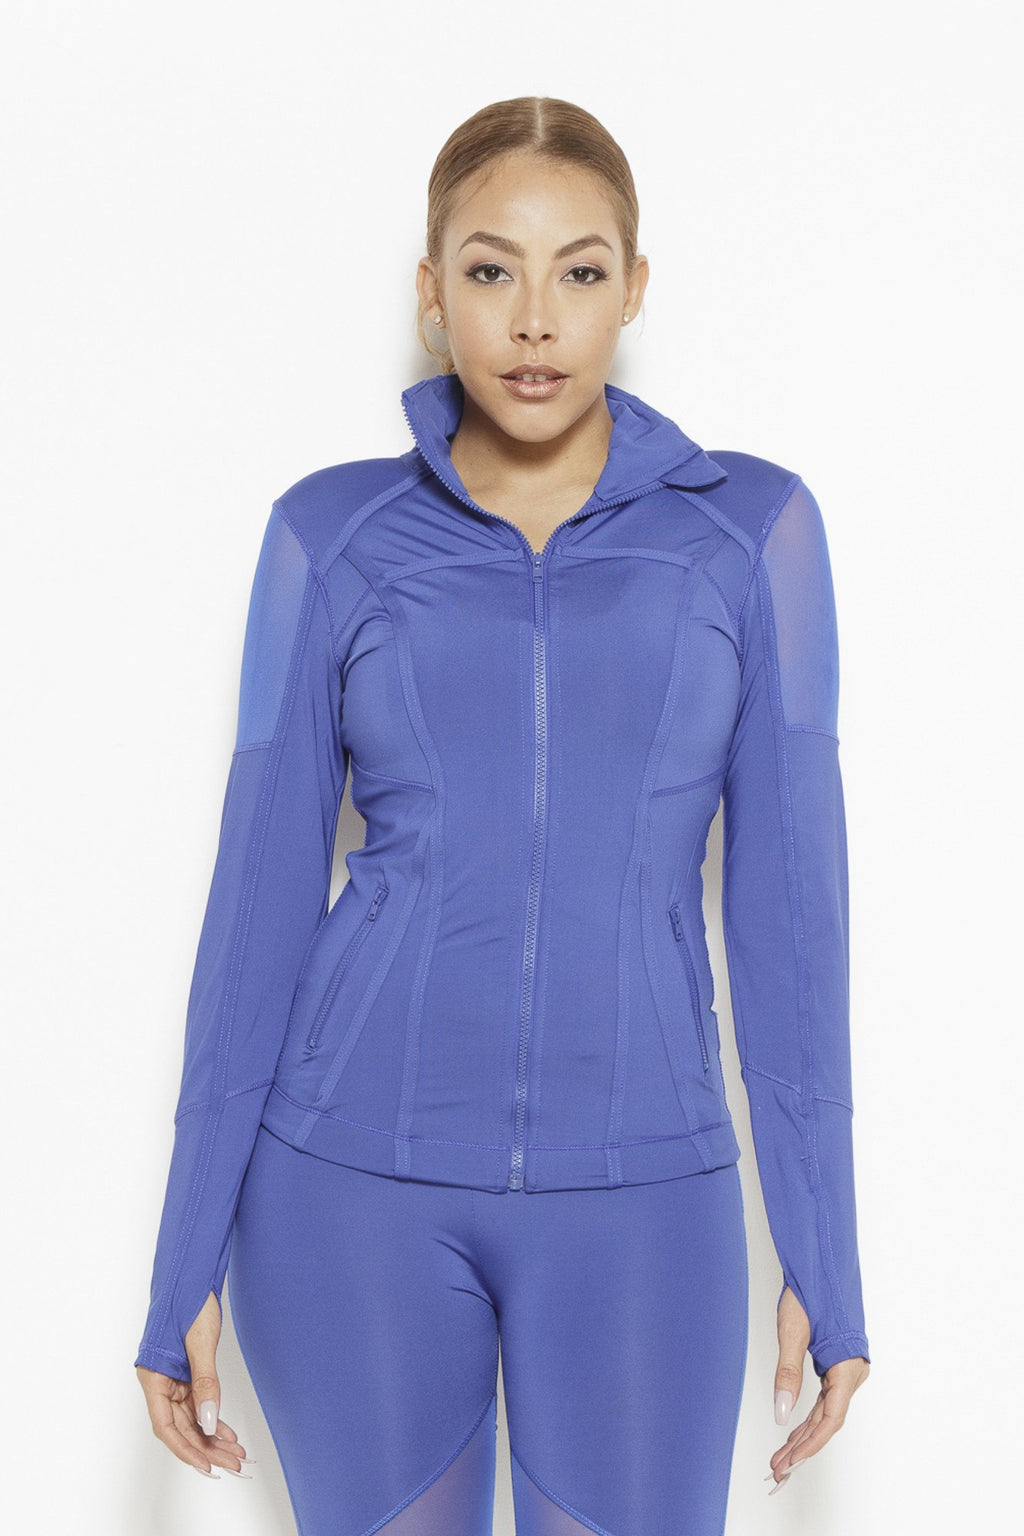 fair-shade - Vibes of Color Sports Jacket- Royal Blue - Clothing